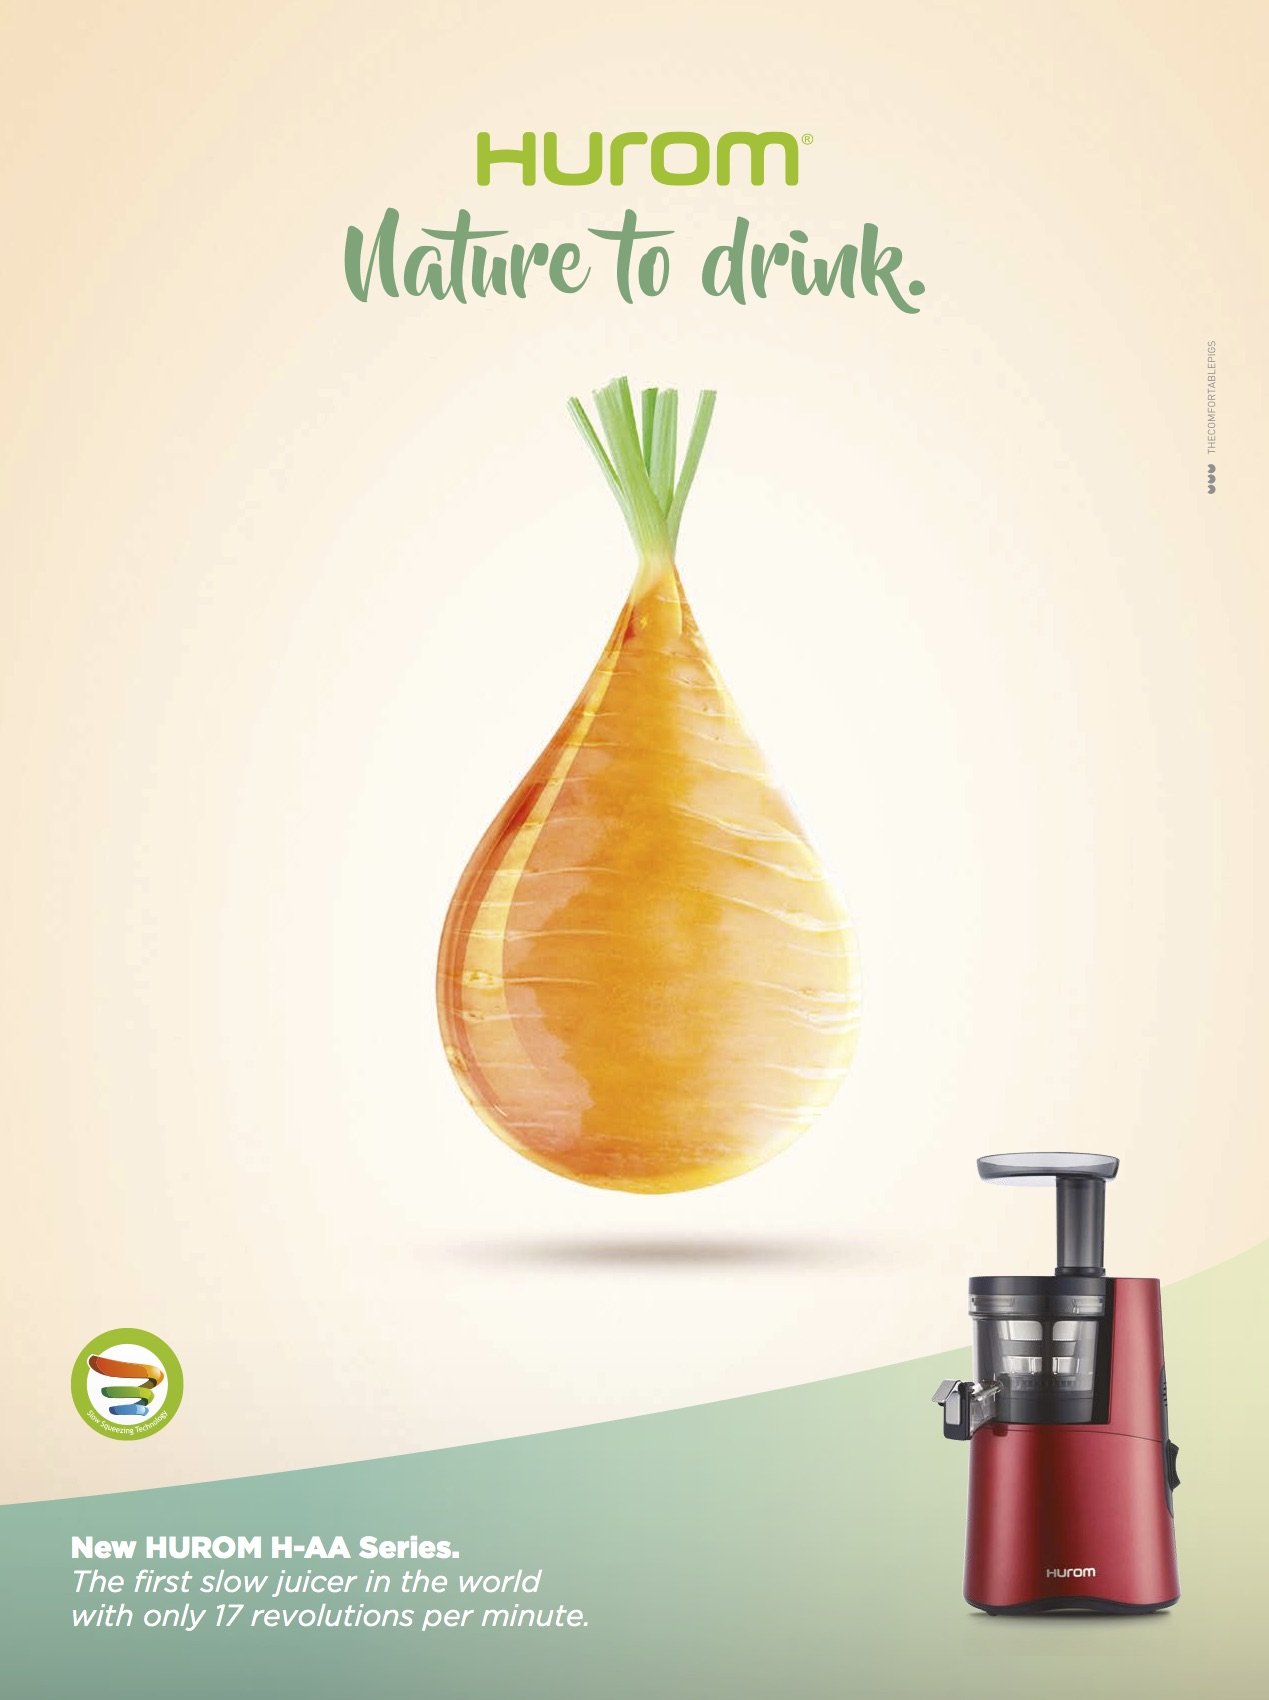 Hurom Slow Juicer Carrots : Hurom Print Advert By Thecomfortablepigs: Drops - Carrot Ads of the World